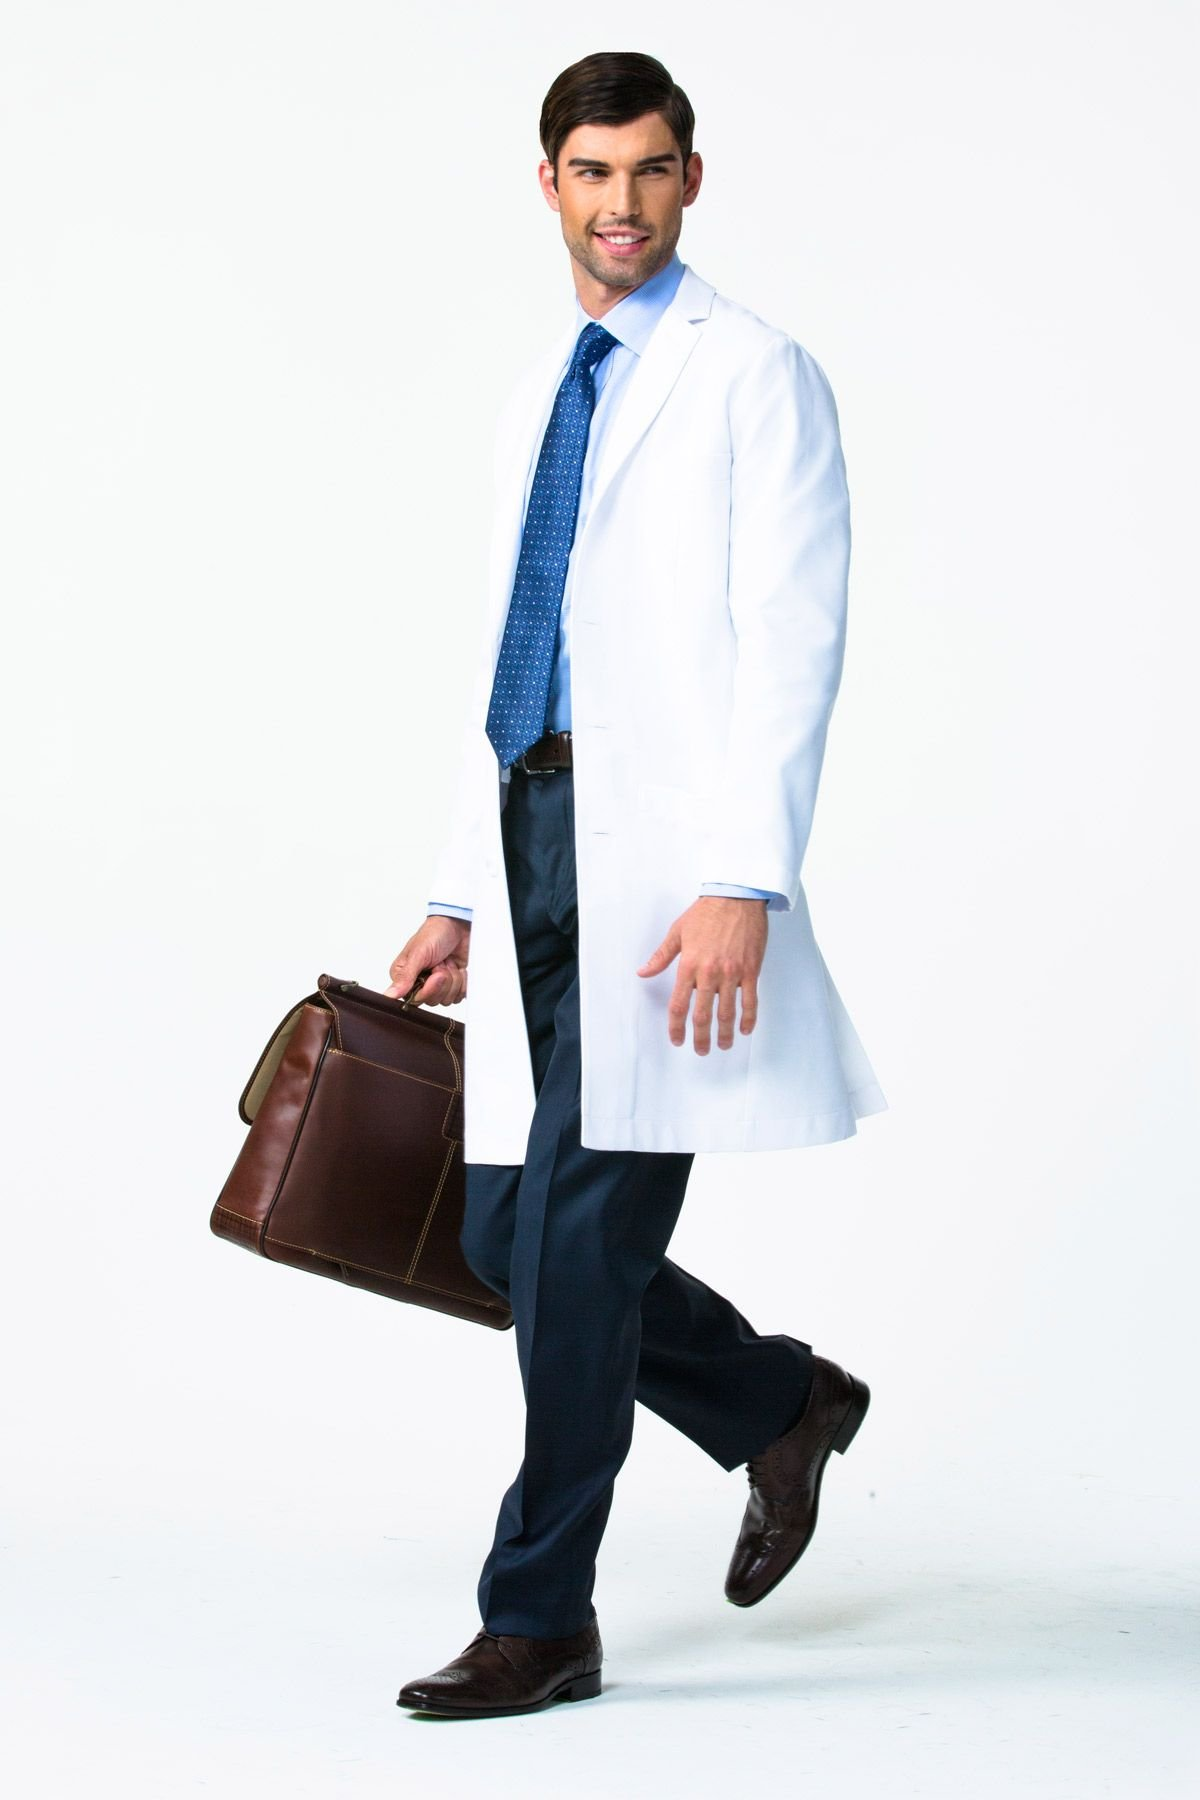 Men's E. Wilson Slim Fit M3 White Lab Coat- Professional Fit With Performance Fabric - Size 36 by Medelita (Image #3)